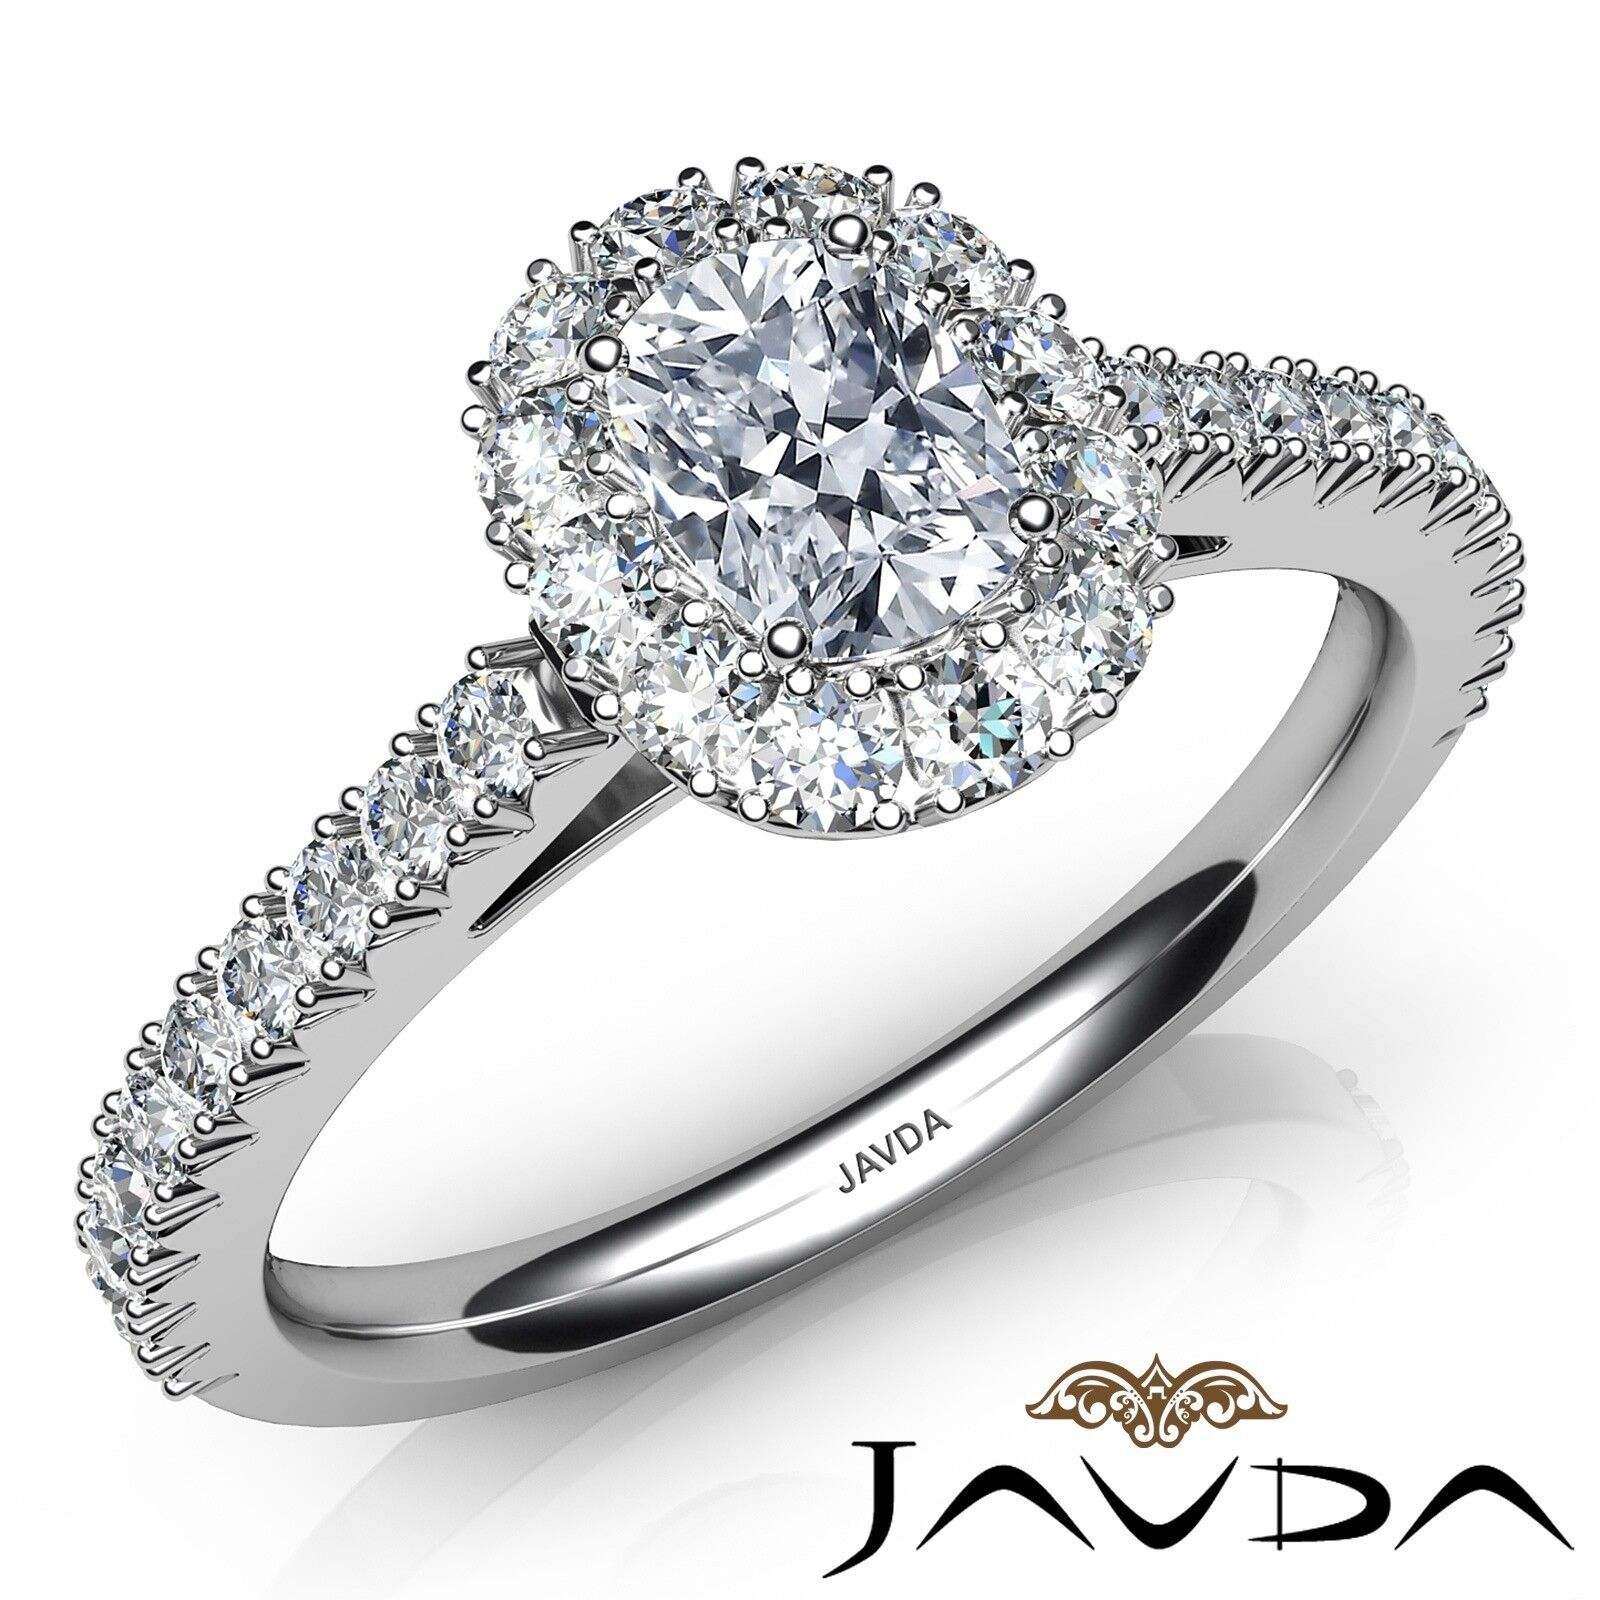 2ctw French Pave Set Halo Cushion Diamond Engagement Ring GIA G-VS2 White Gold